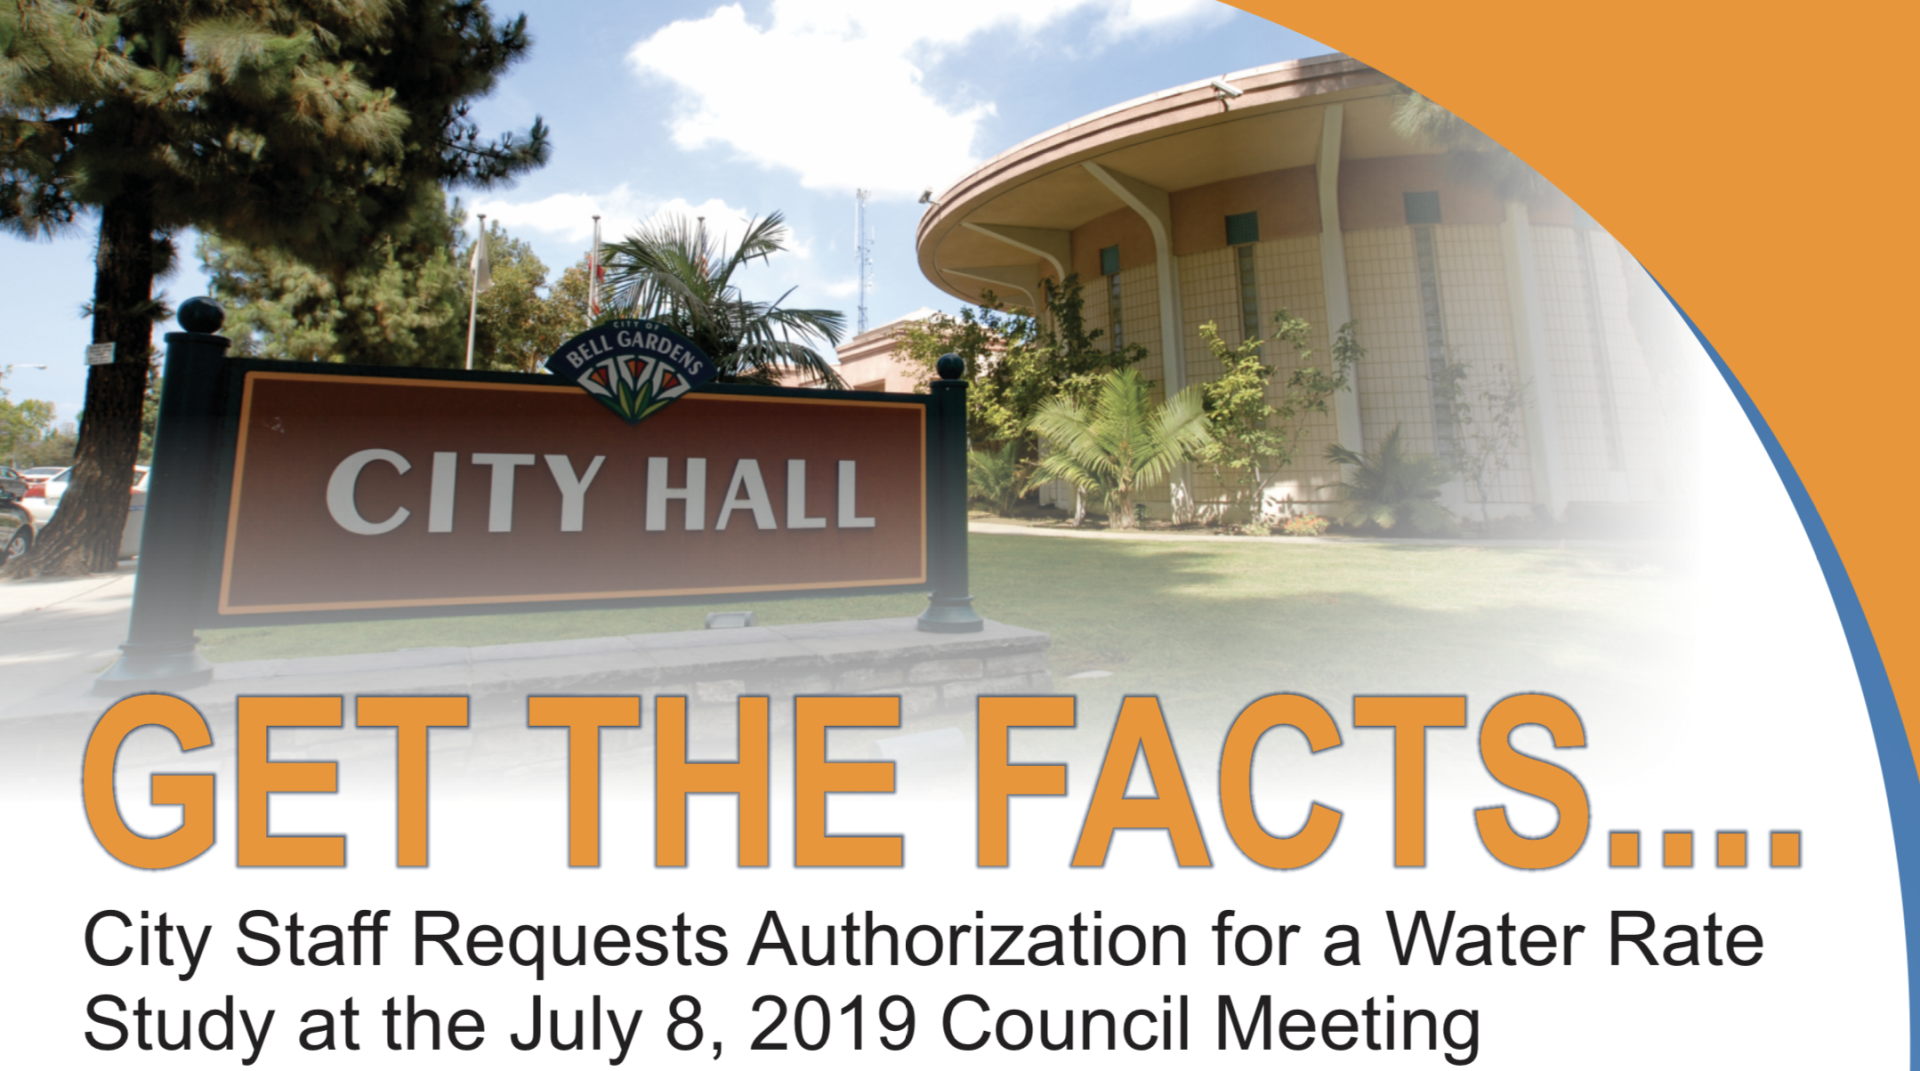 City Staff Requests Authorization for a Water Rate Study at July 8, 2019 Council Meeting